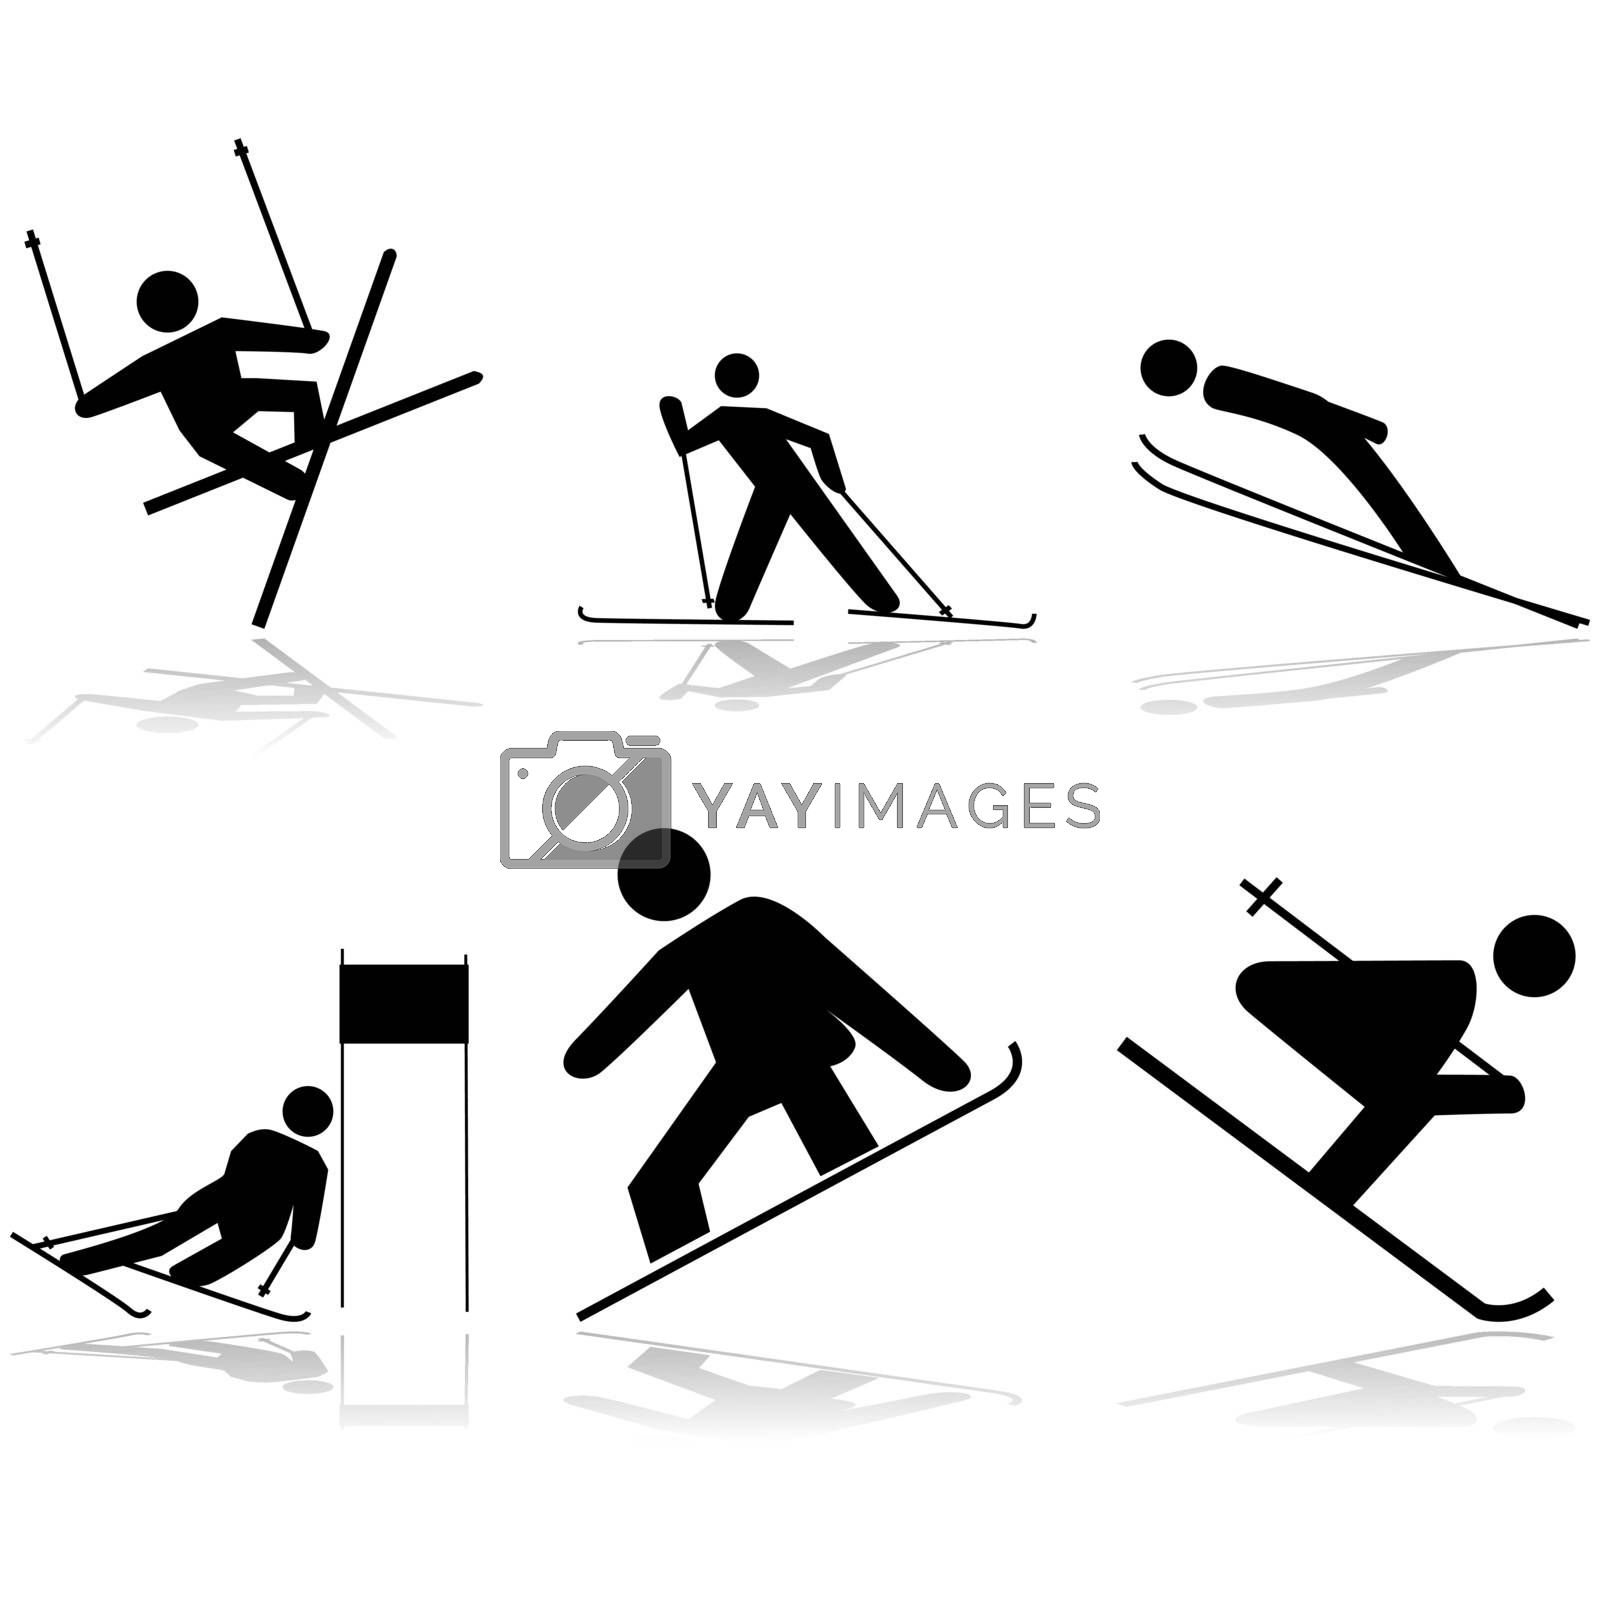 Icon illustrations showing different winter sports performed on snow surfaces